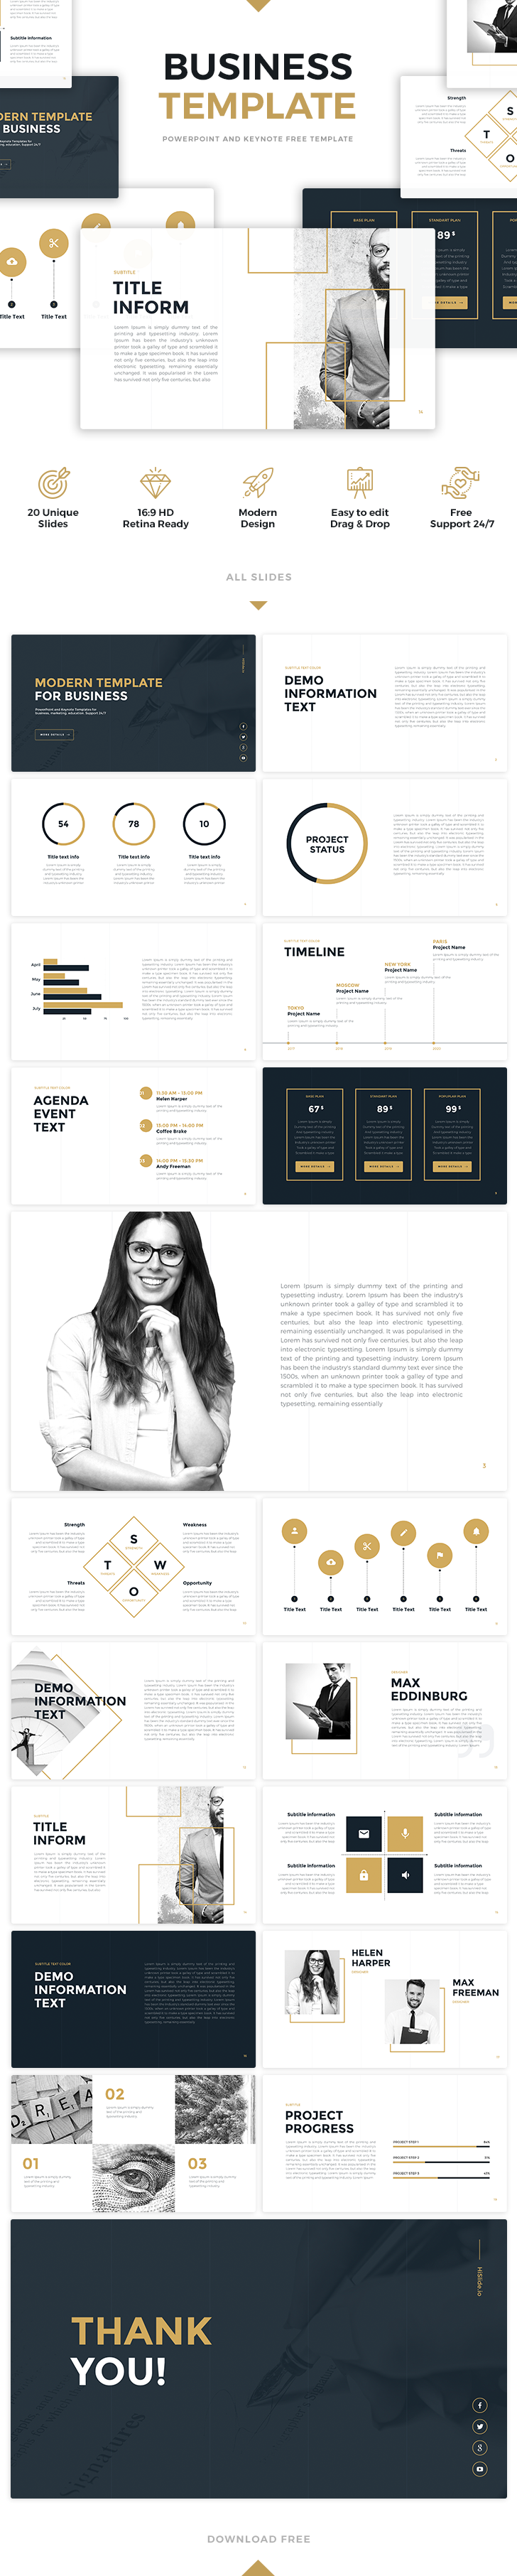 Free download artbusiness template for powerpoint or keynotes free download artbusiness template for powerpoint or keynotes 20 unique slides toneelgroepblik Gallery